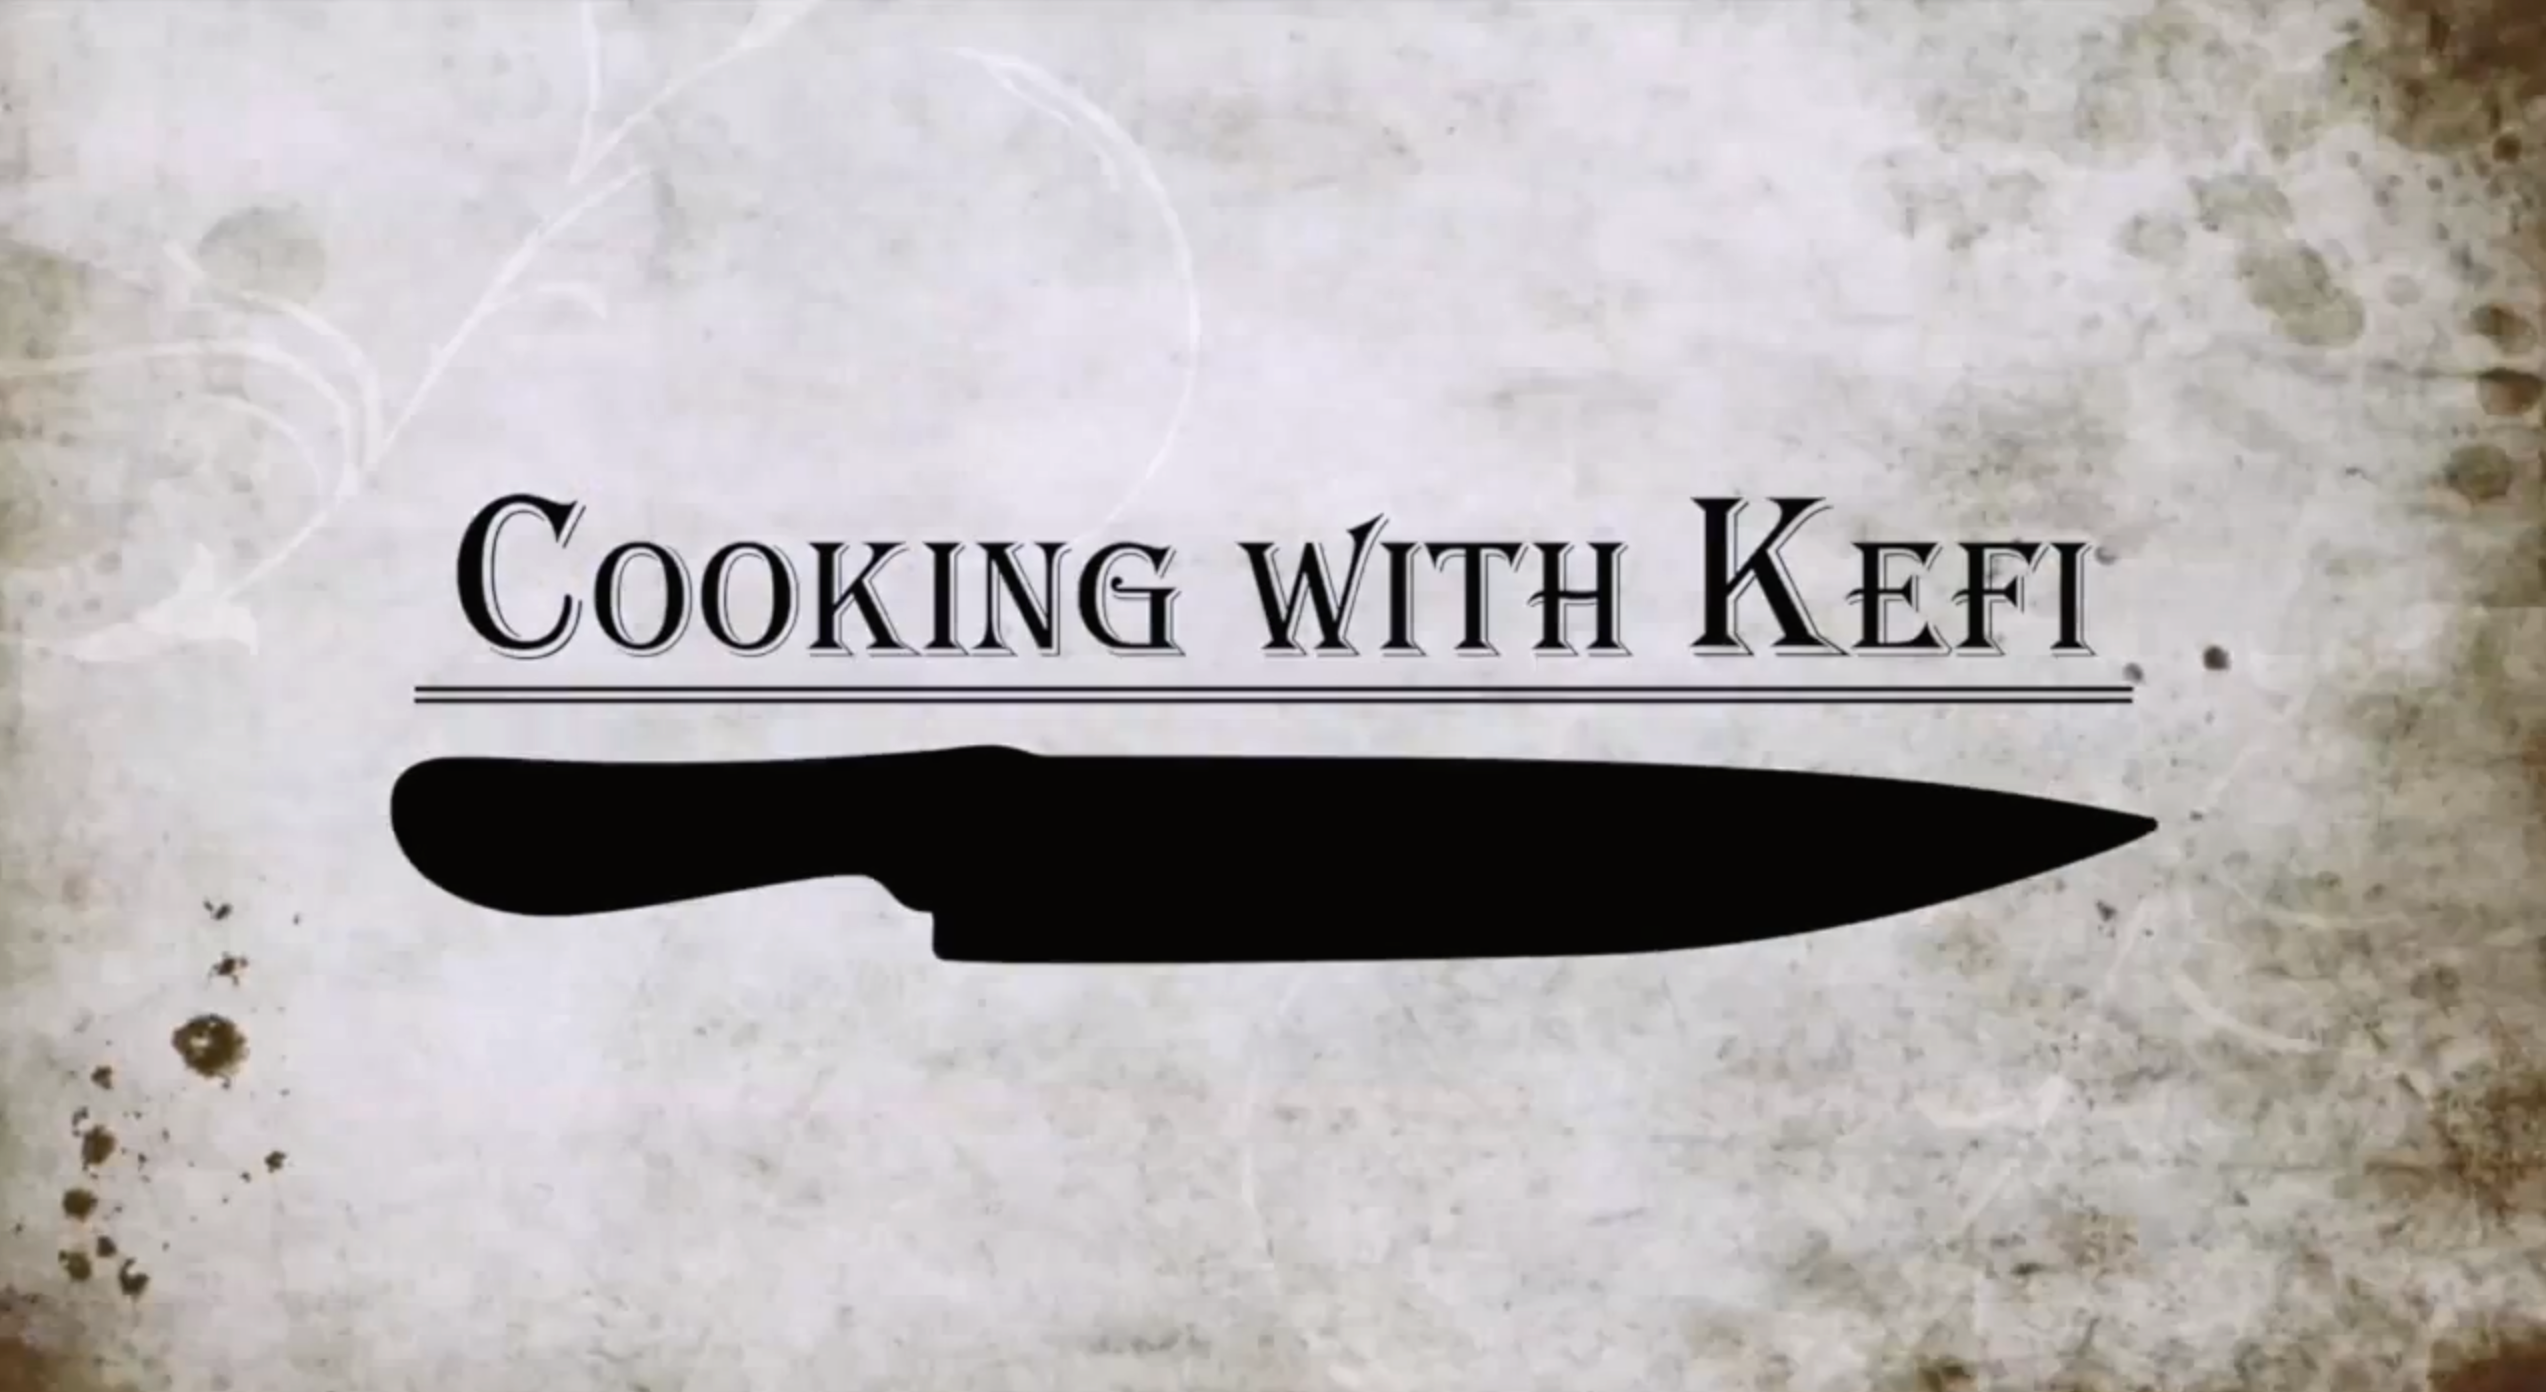 Cooking with Kefi